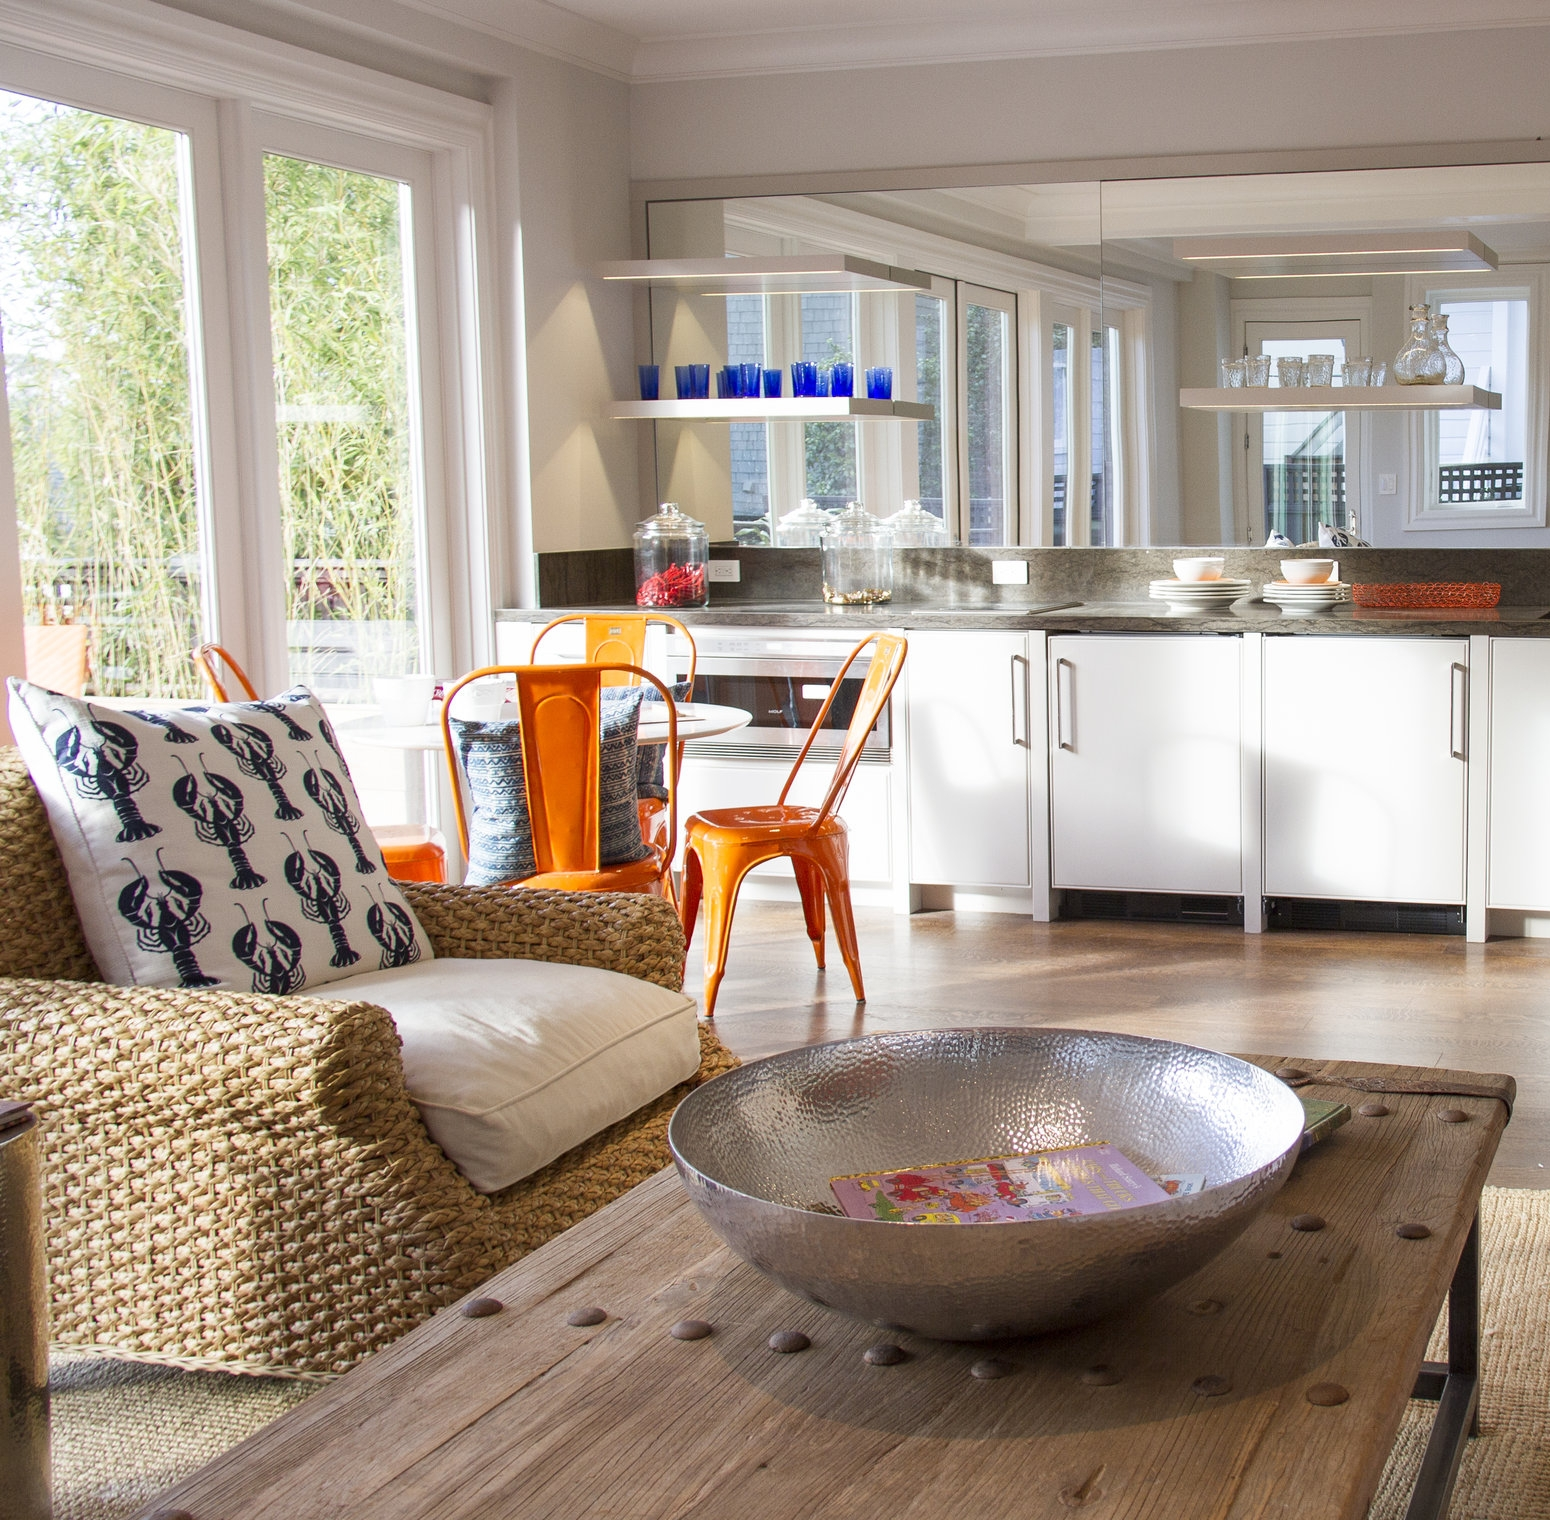 kitchen, dining area, white, color, seating area, simple, mirror, hardwood floor, open shelving